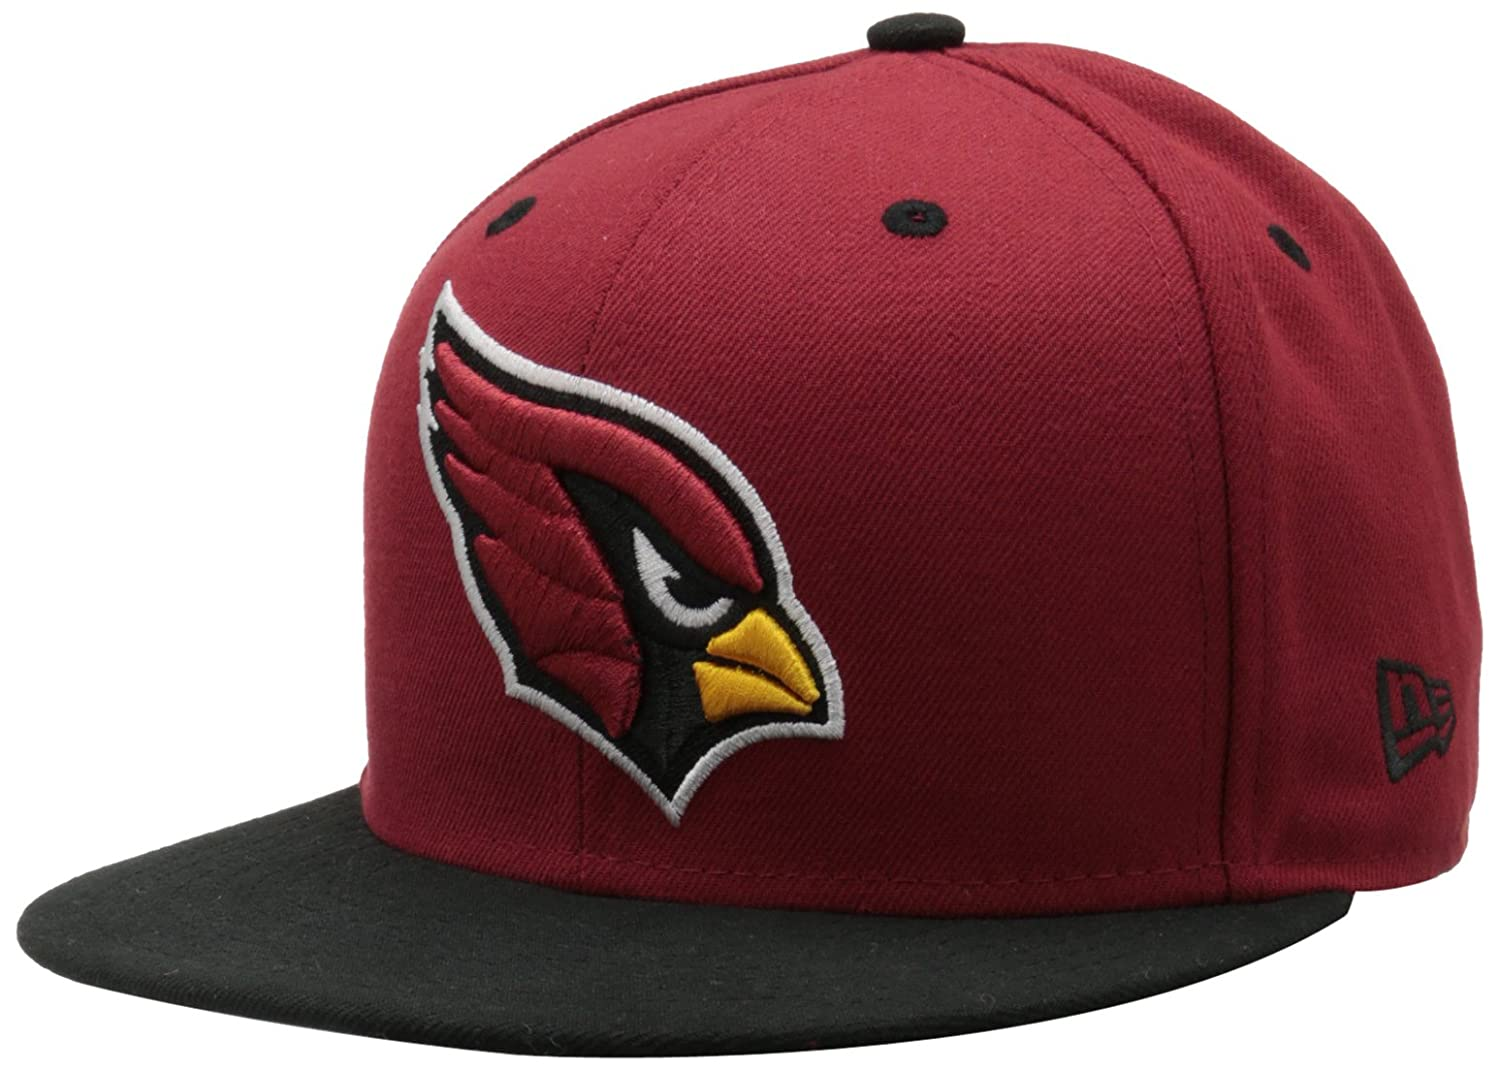 c4831c69482 Amazon.com   New Era NFL Two Tone 59FIFTY Fitted Cap   Clothing